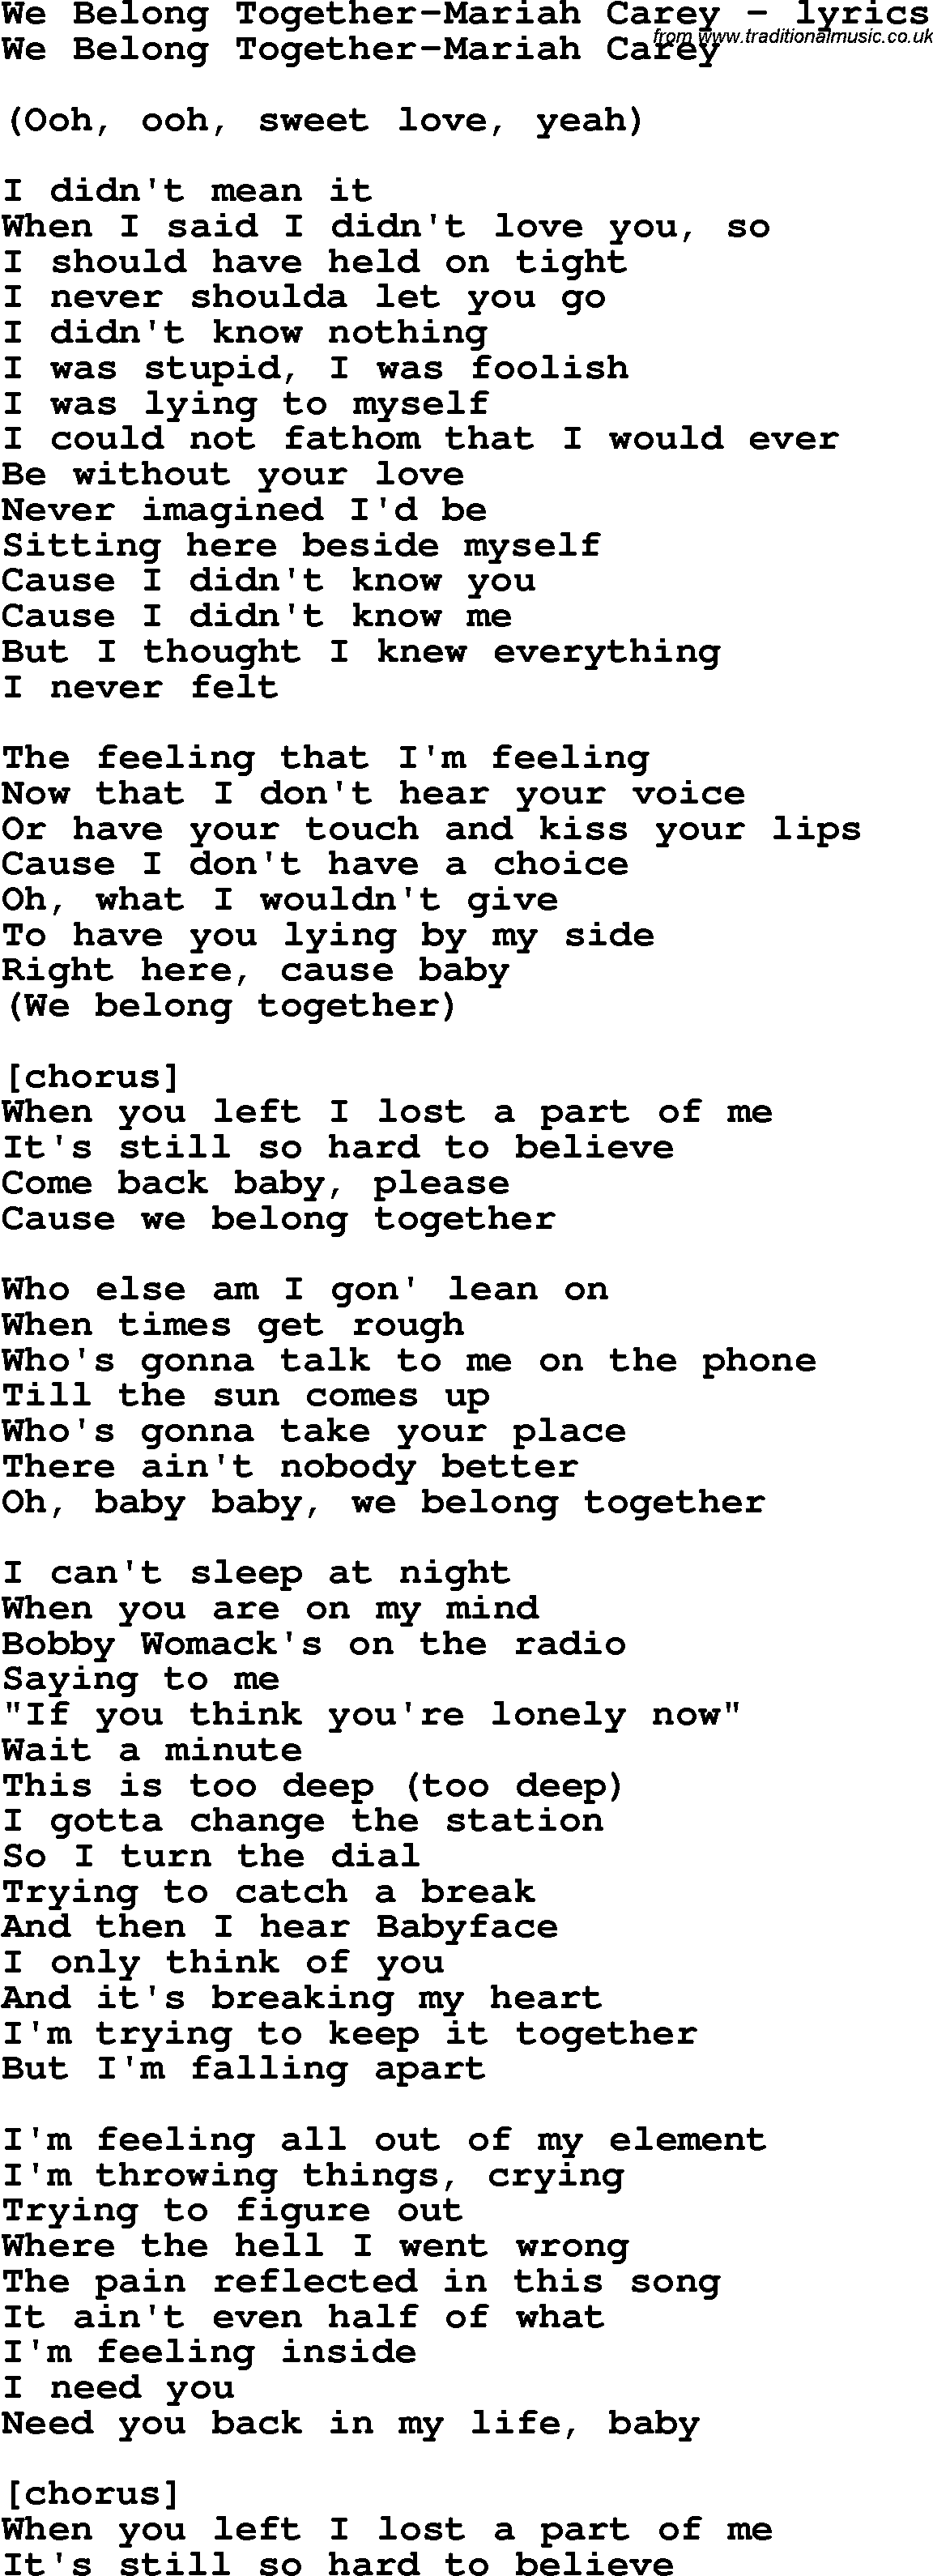 0dd5ee9e7 Love Song Lyrics for: We Belong Together-Mariah Carey